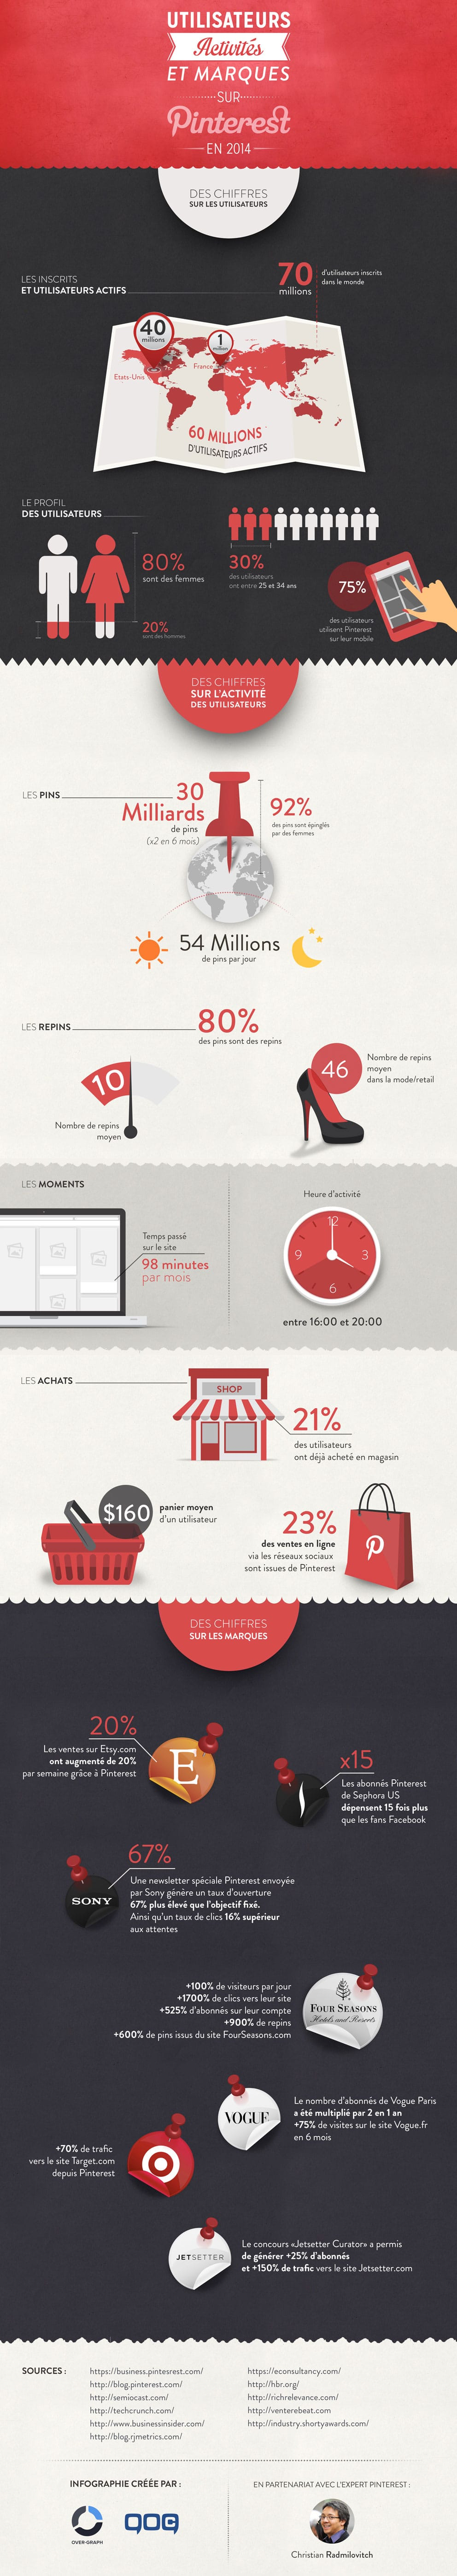 infographie pinterest 2017